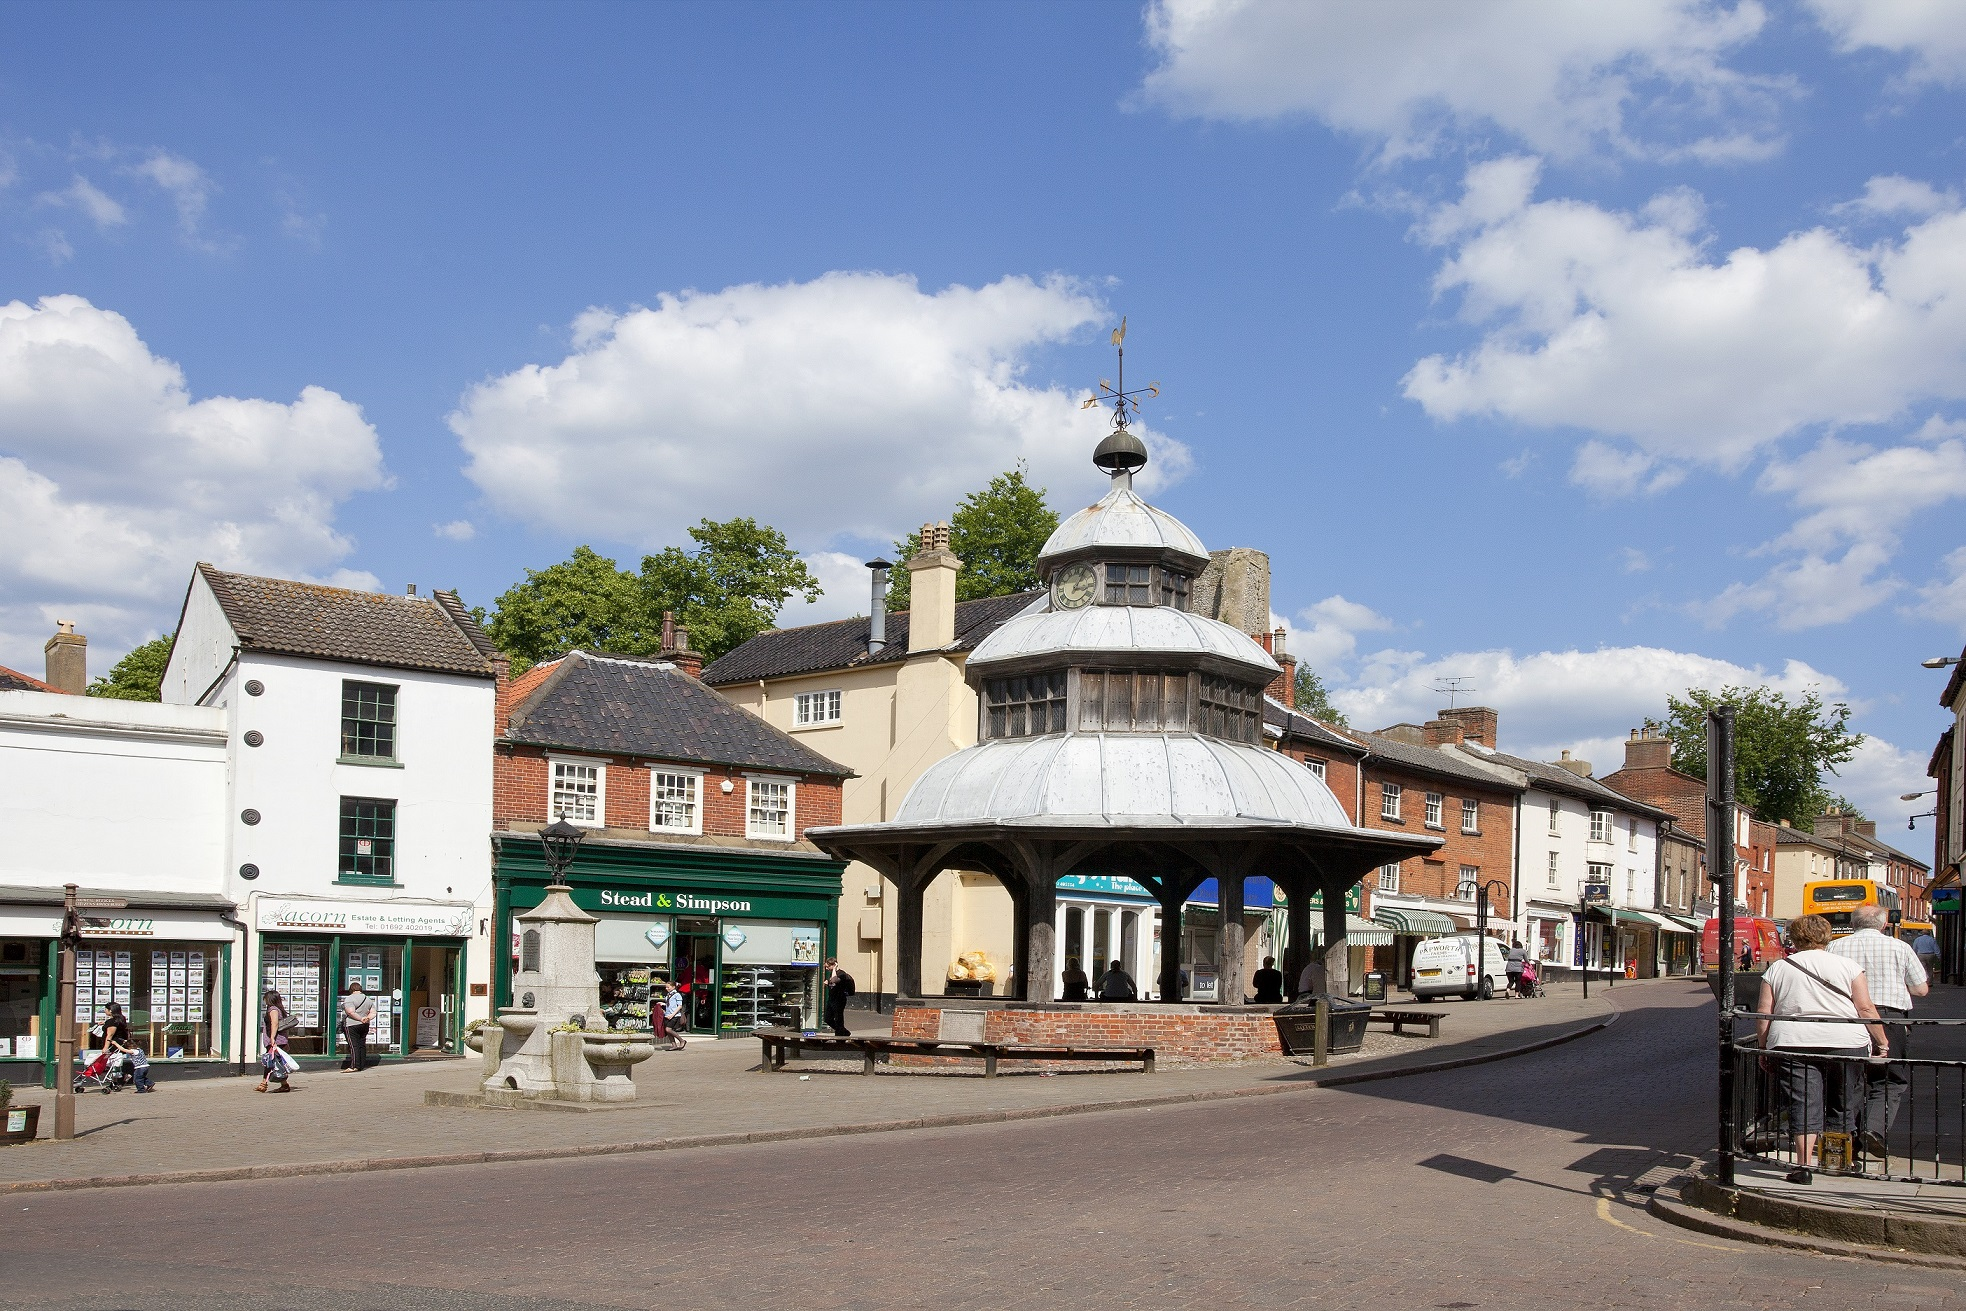 Placemaking to Begin for the North Walsham High Street Heritage Action Zone